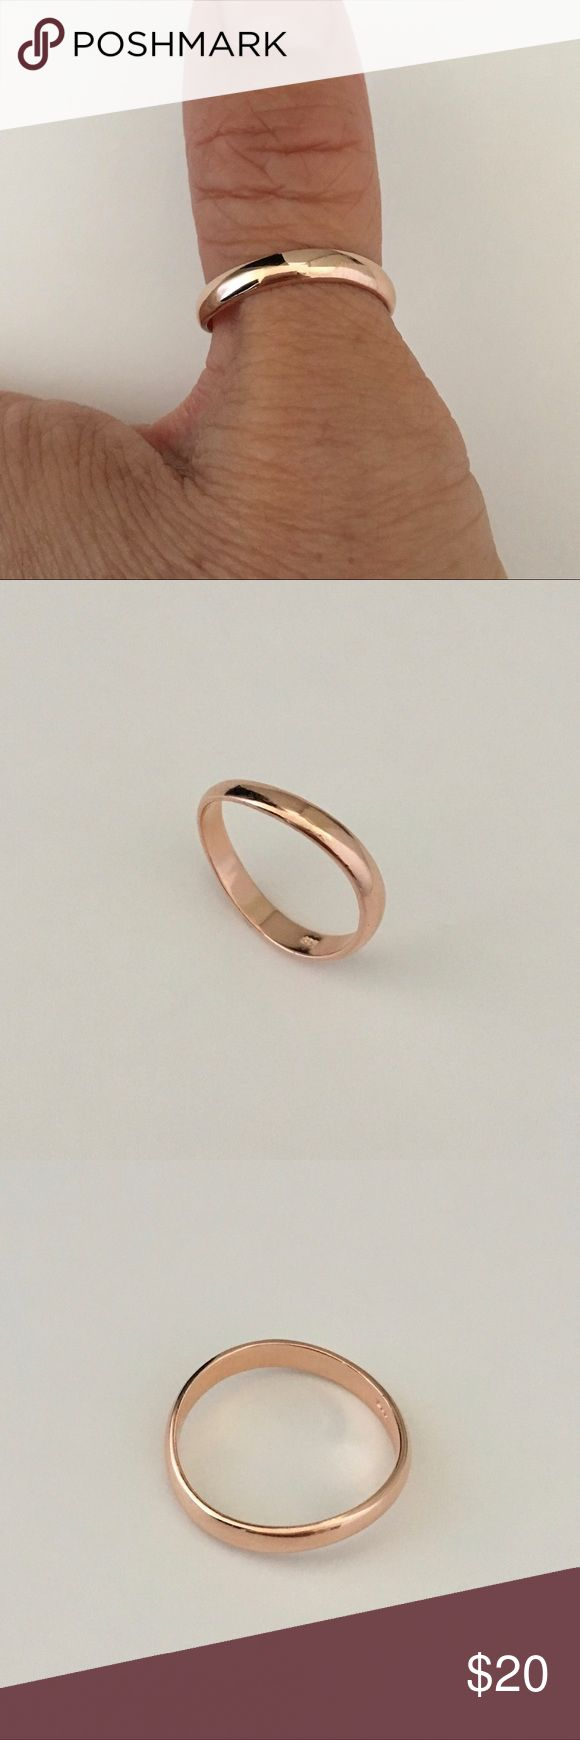 Rose Gold Plated Sterling Silver Thumb Ring Rose Gold Plated Sterling Silver 3mm Thumb Ring, Pinky Ring, Midi Ring, Index Ring, Thumb Ring, 925 Sterling Silver, Stackable Ring, Band Width 3mm Jewelry Rings